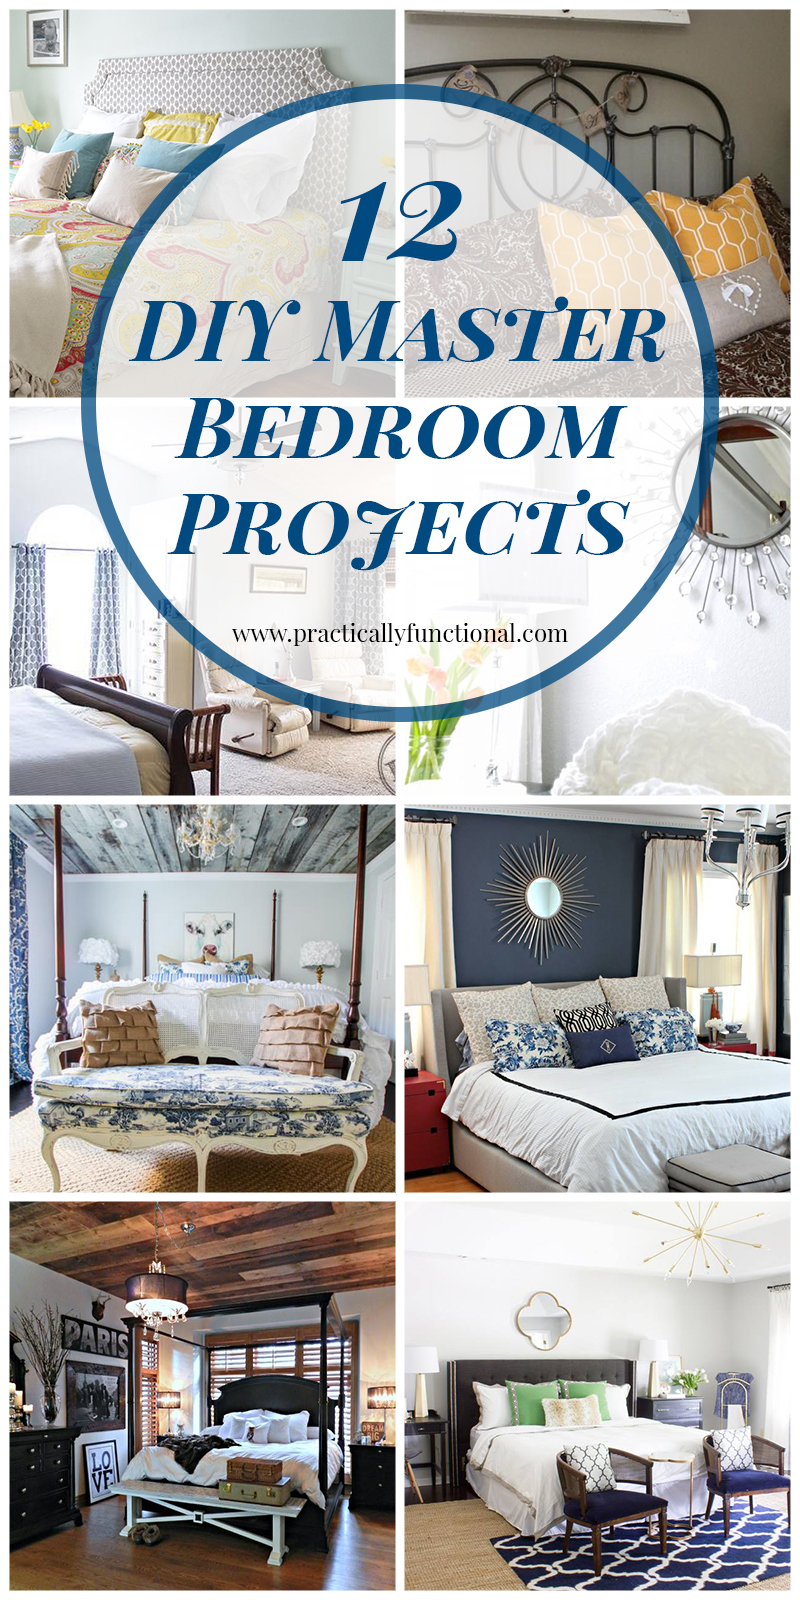 12 DIY Master Bedroom Projects